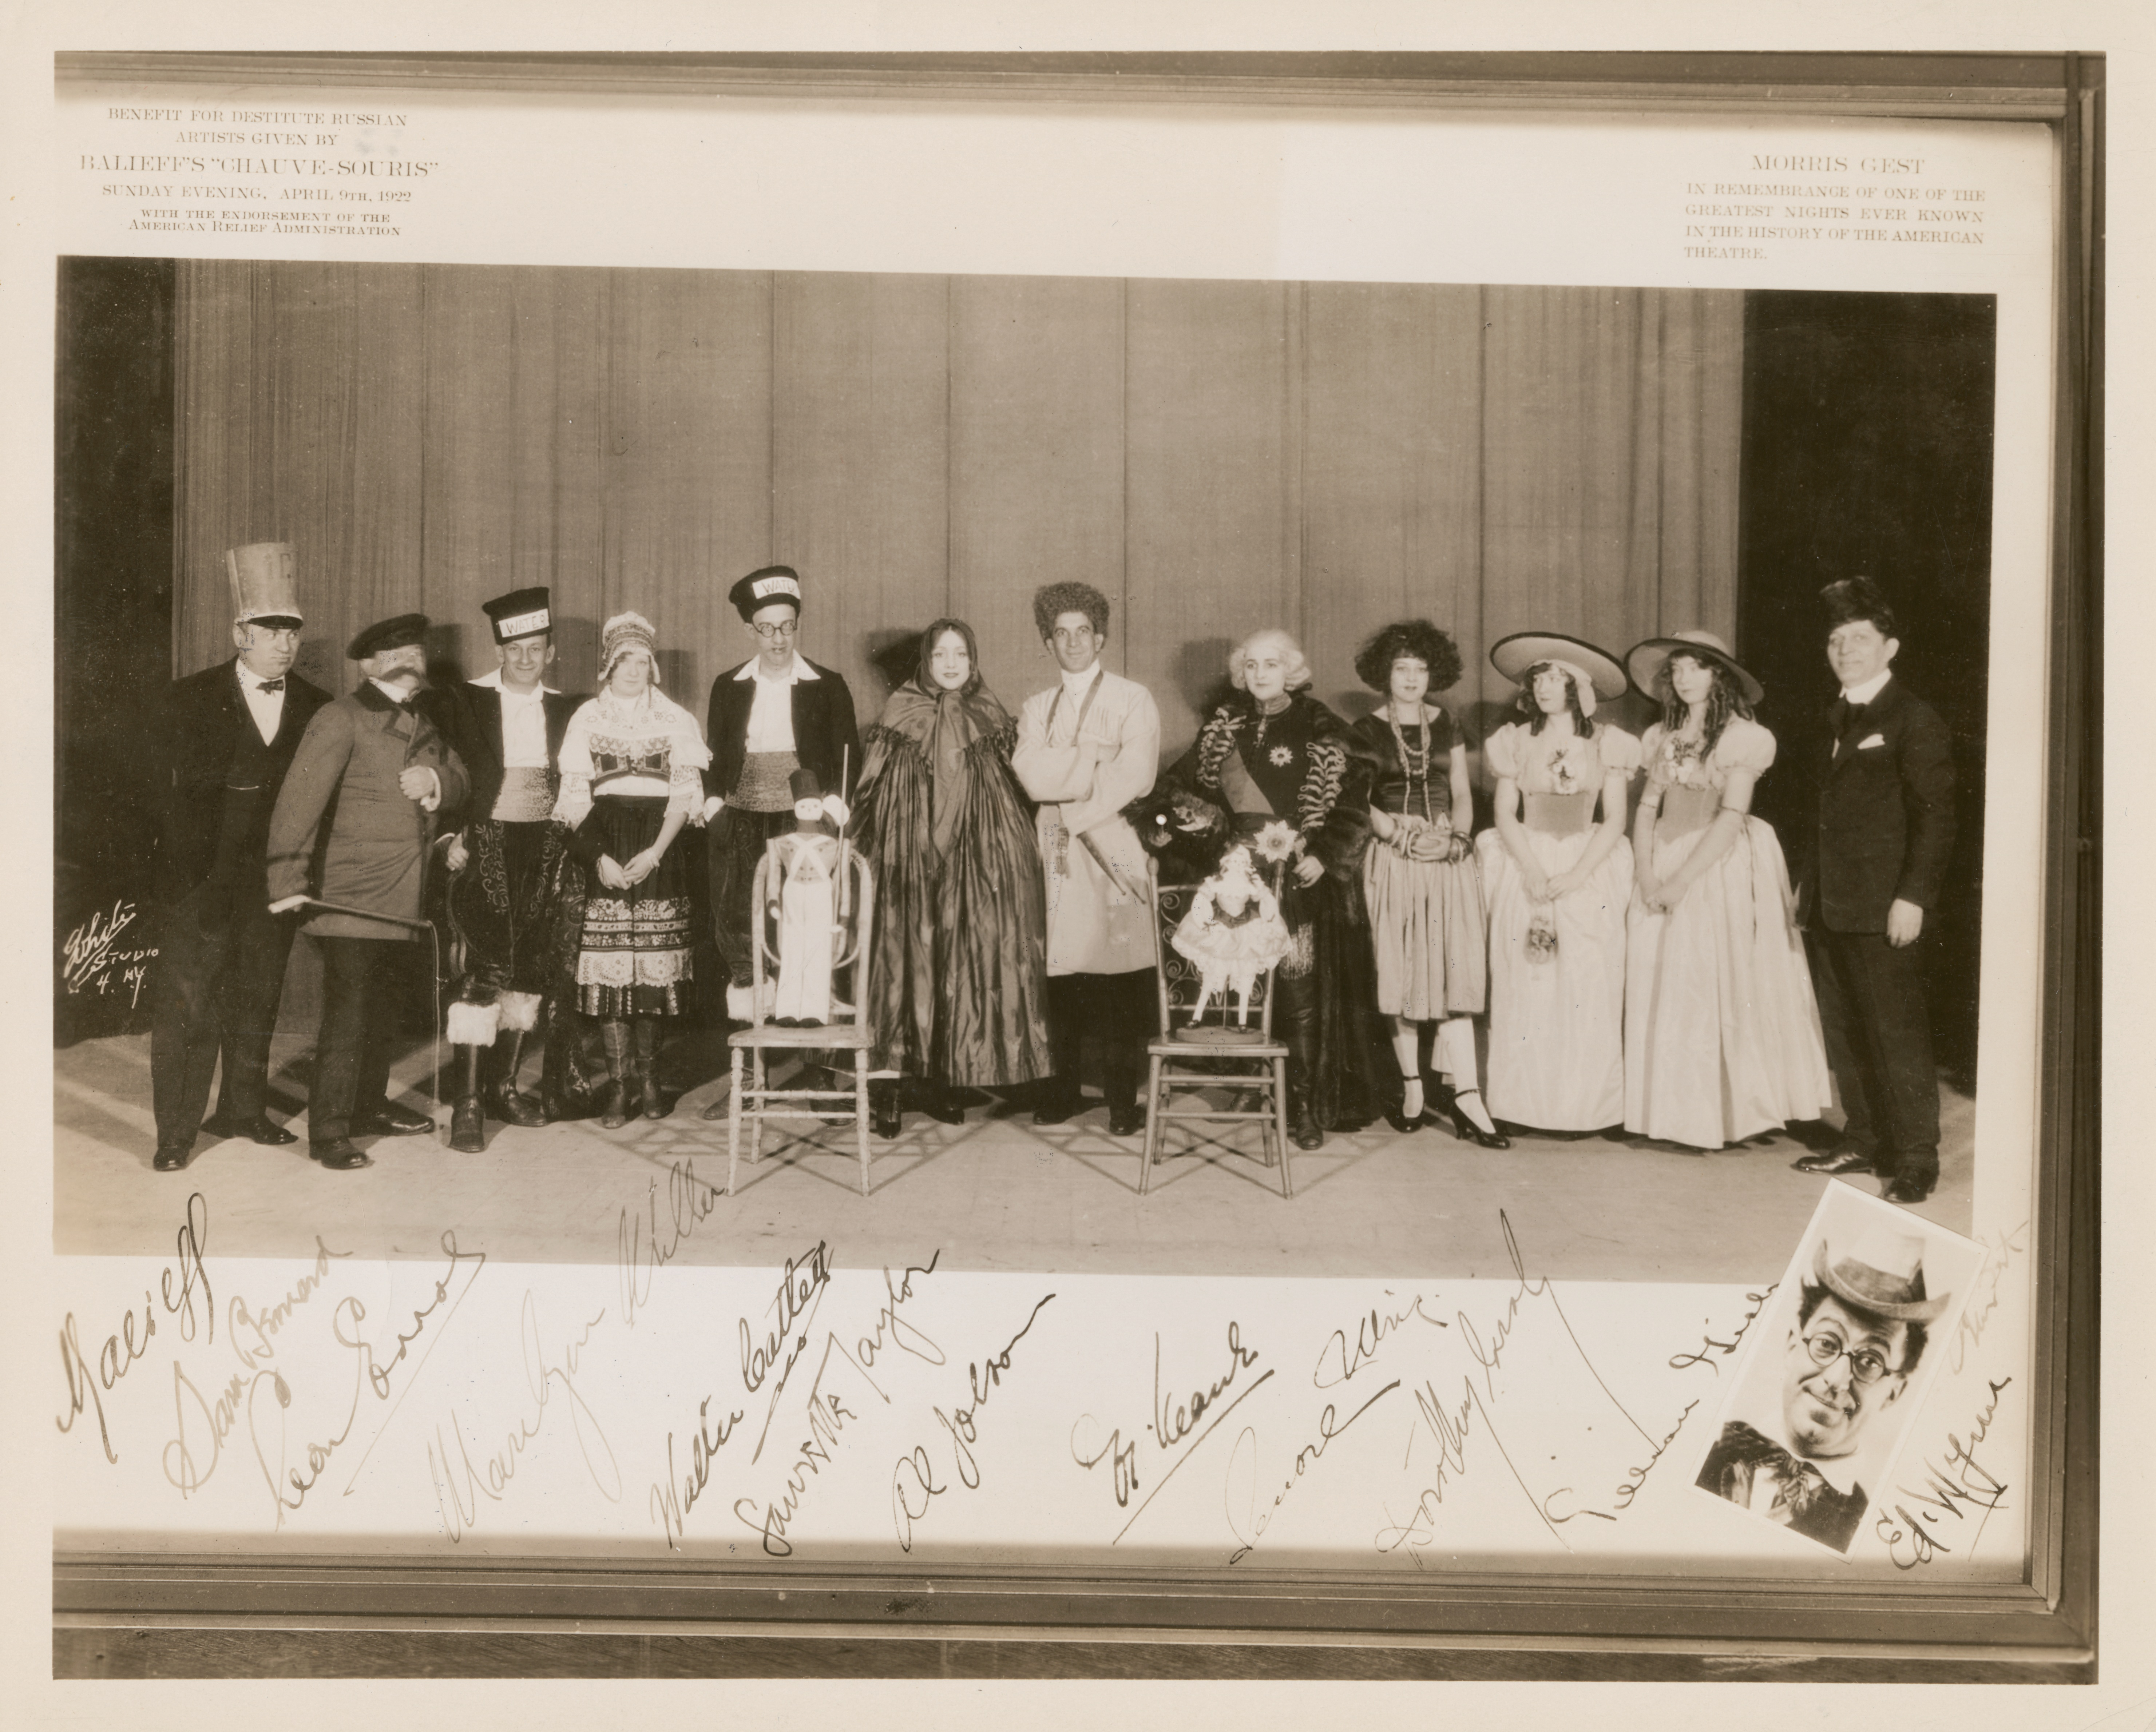 Al Jolson and other celebrities, including Balieff (far left) and other members of the Chauve-Souris's cast at the Benefit for Destitute Russian Artists, April 9, 1922.